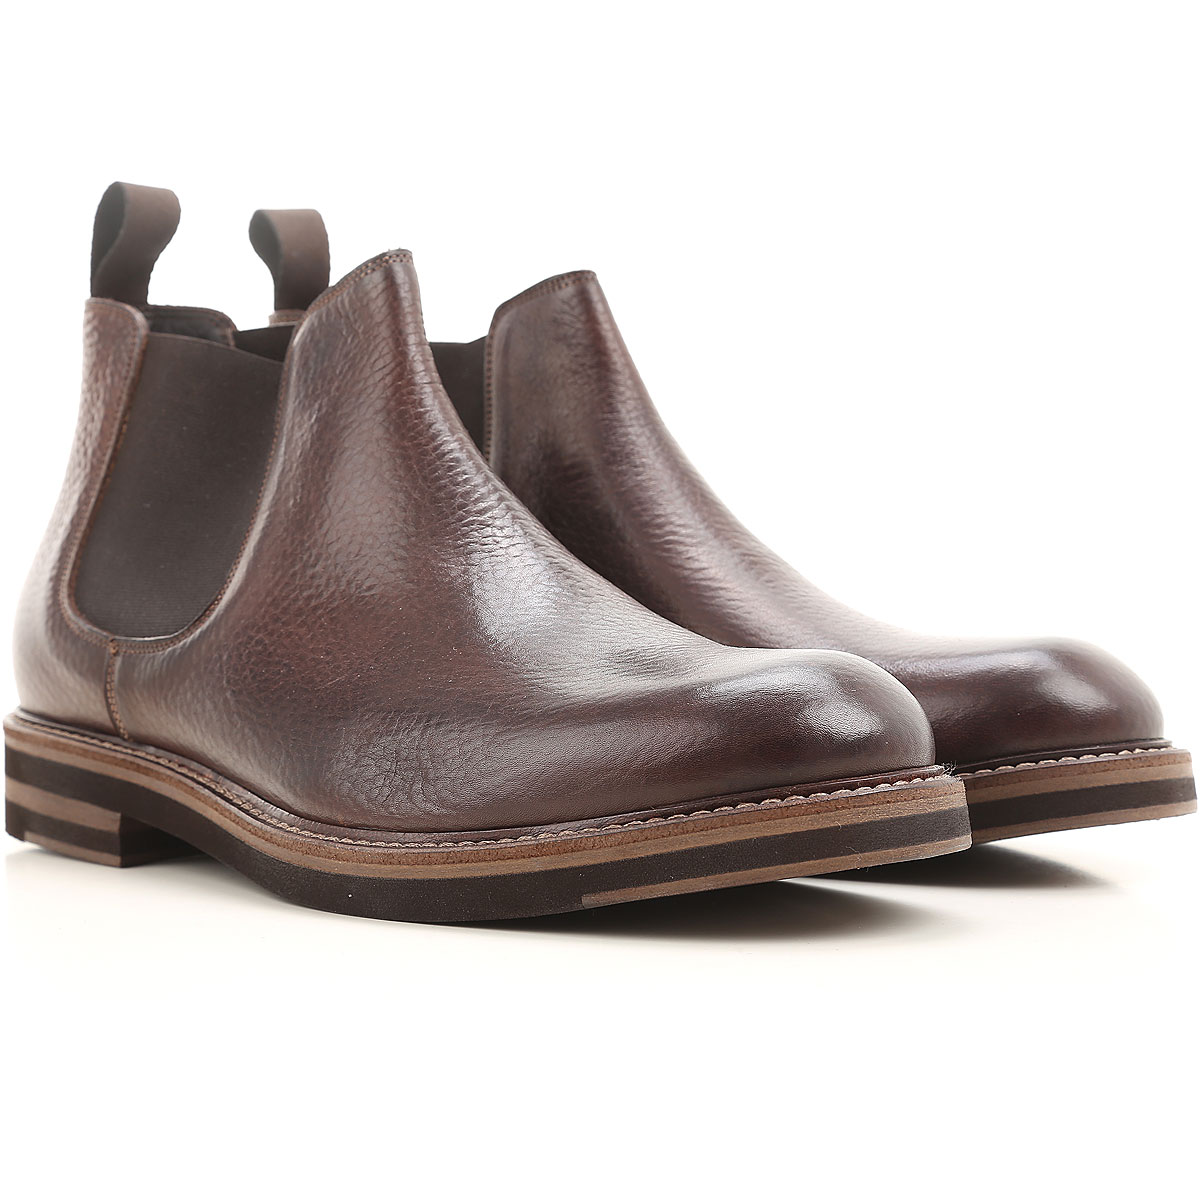 Image of Jerold Wilton Mens Shoes, Brown coffee, Leather, 2017, 10 7 7.5 8 9.5